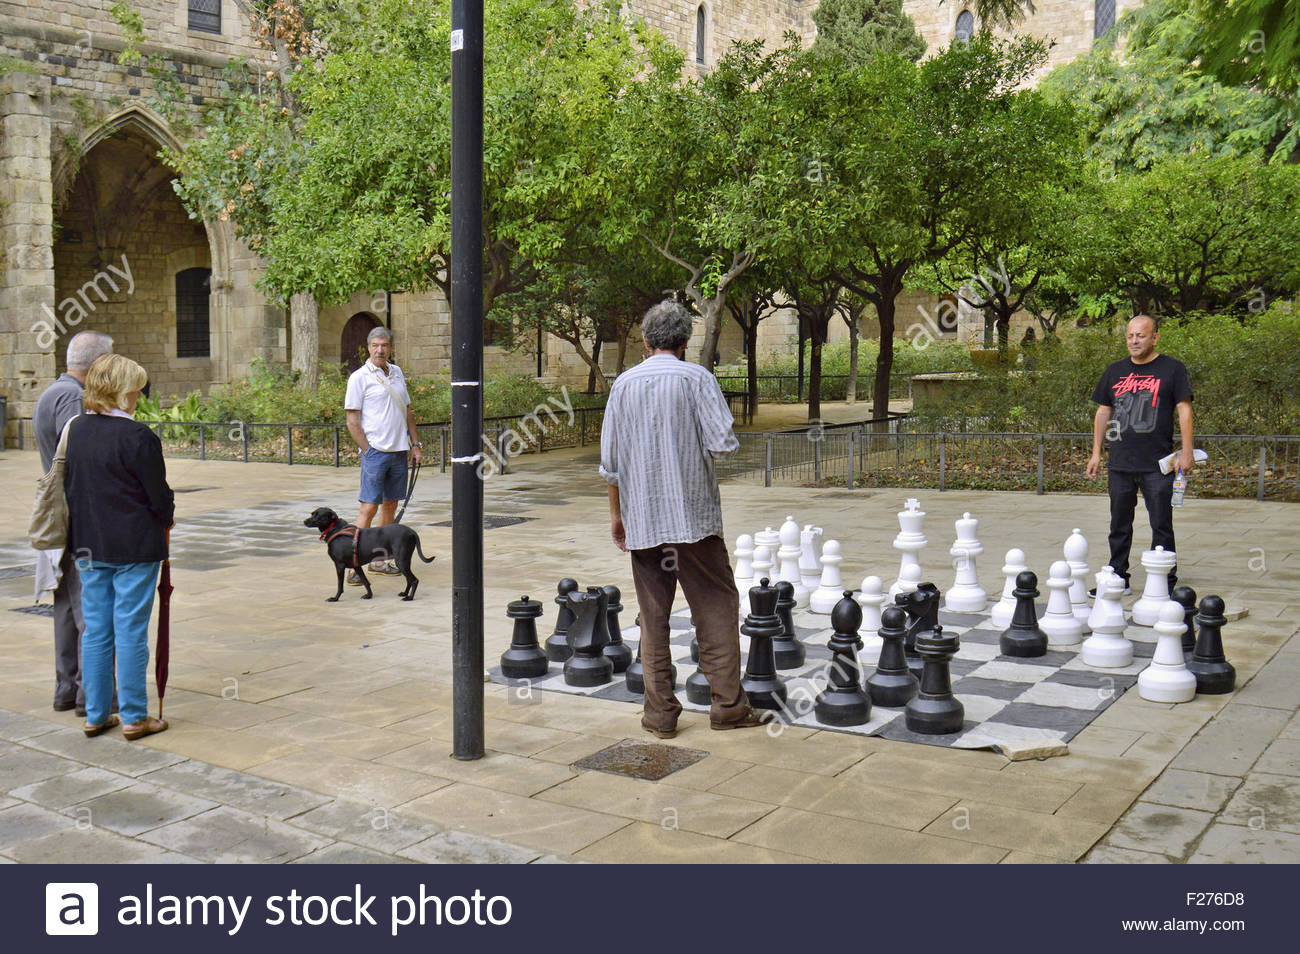 Men playing chess in park with large oversize figures, Ciutat Vella Barcelona Catalonia Spain Europe - Stock Image